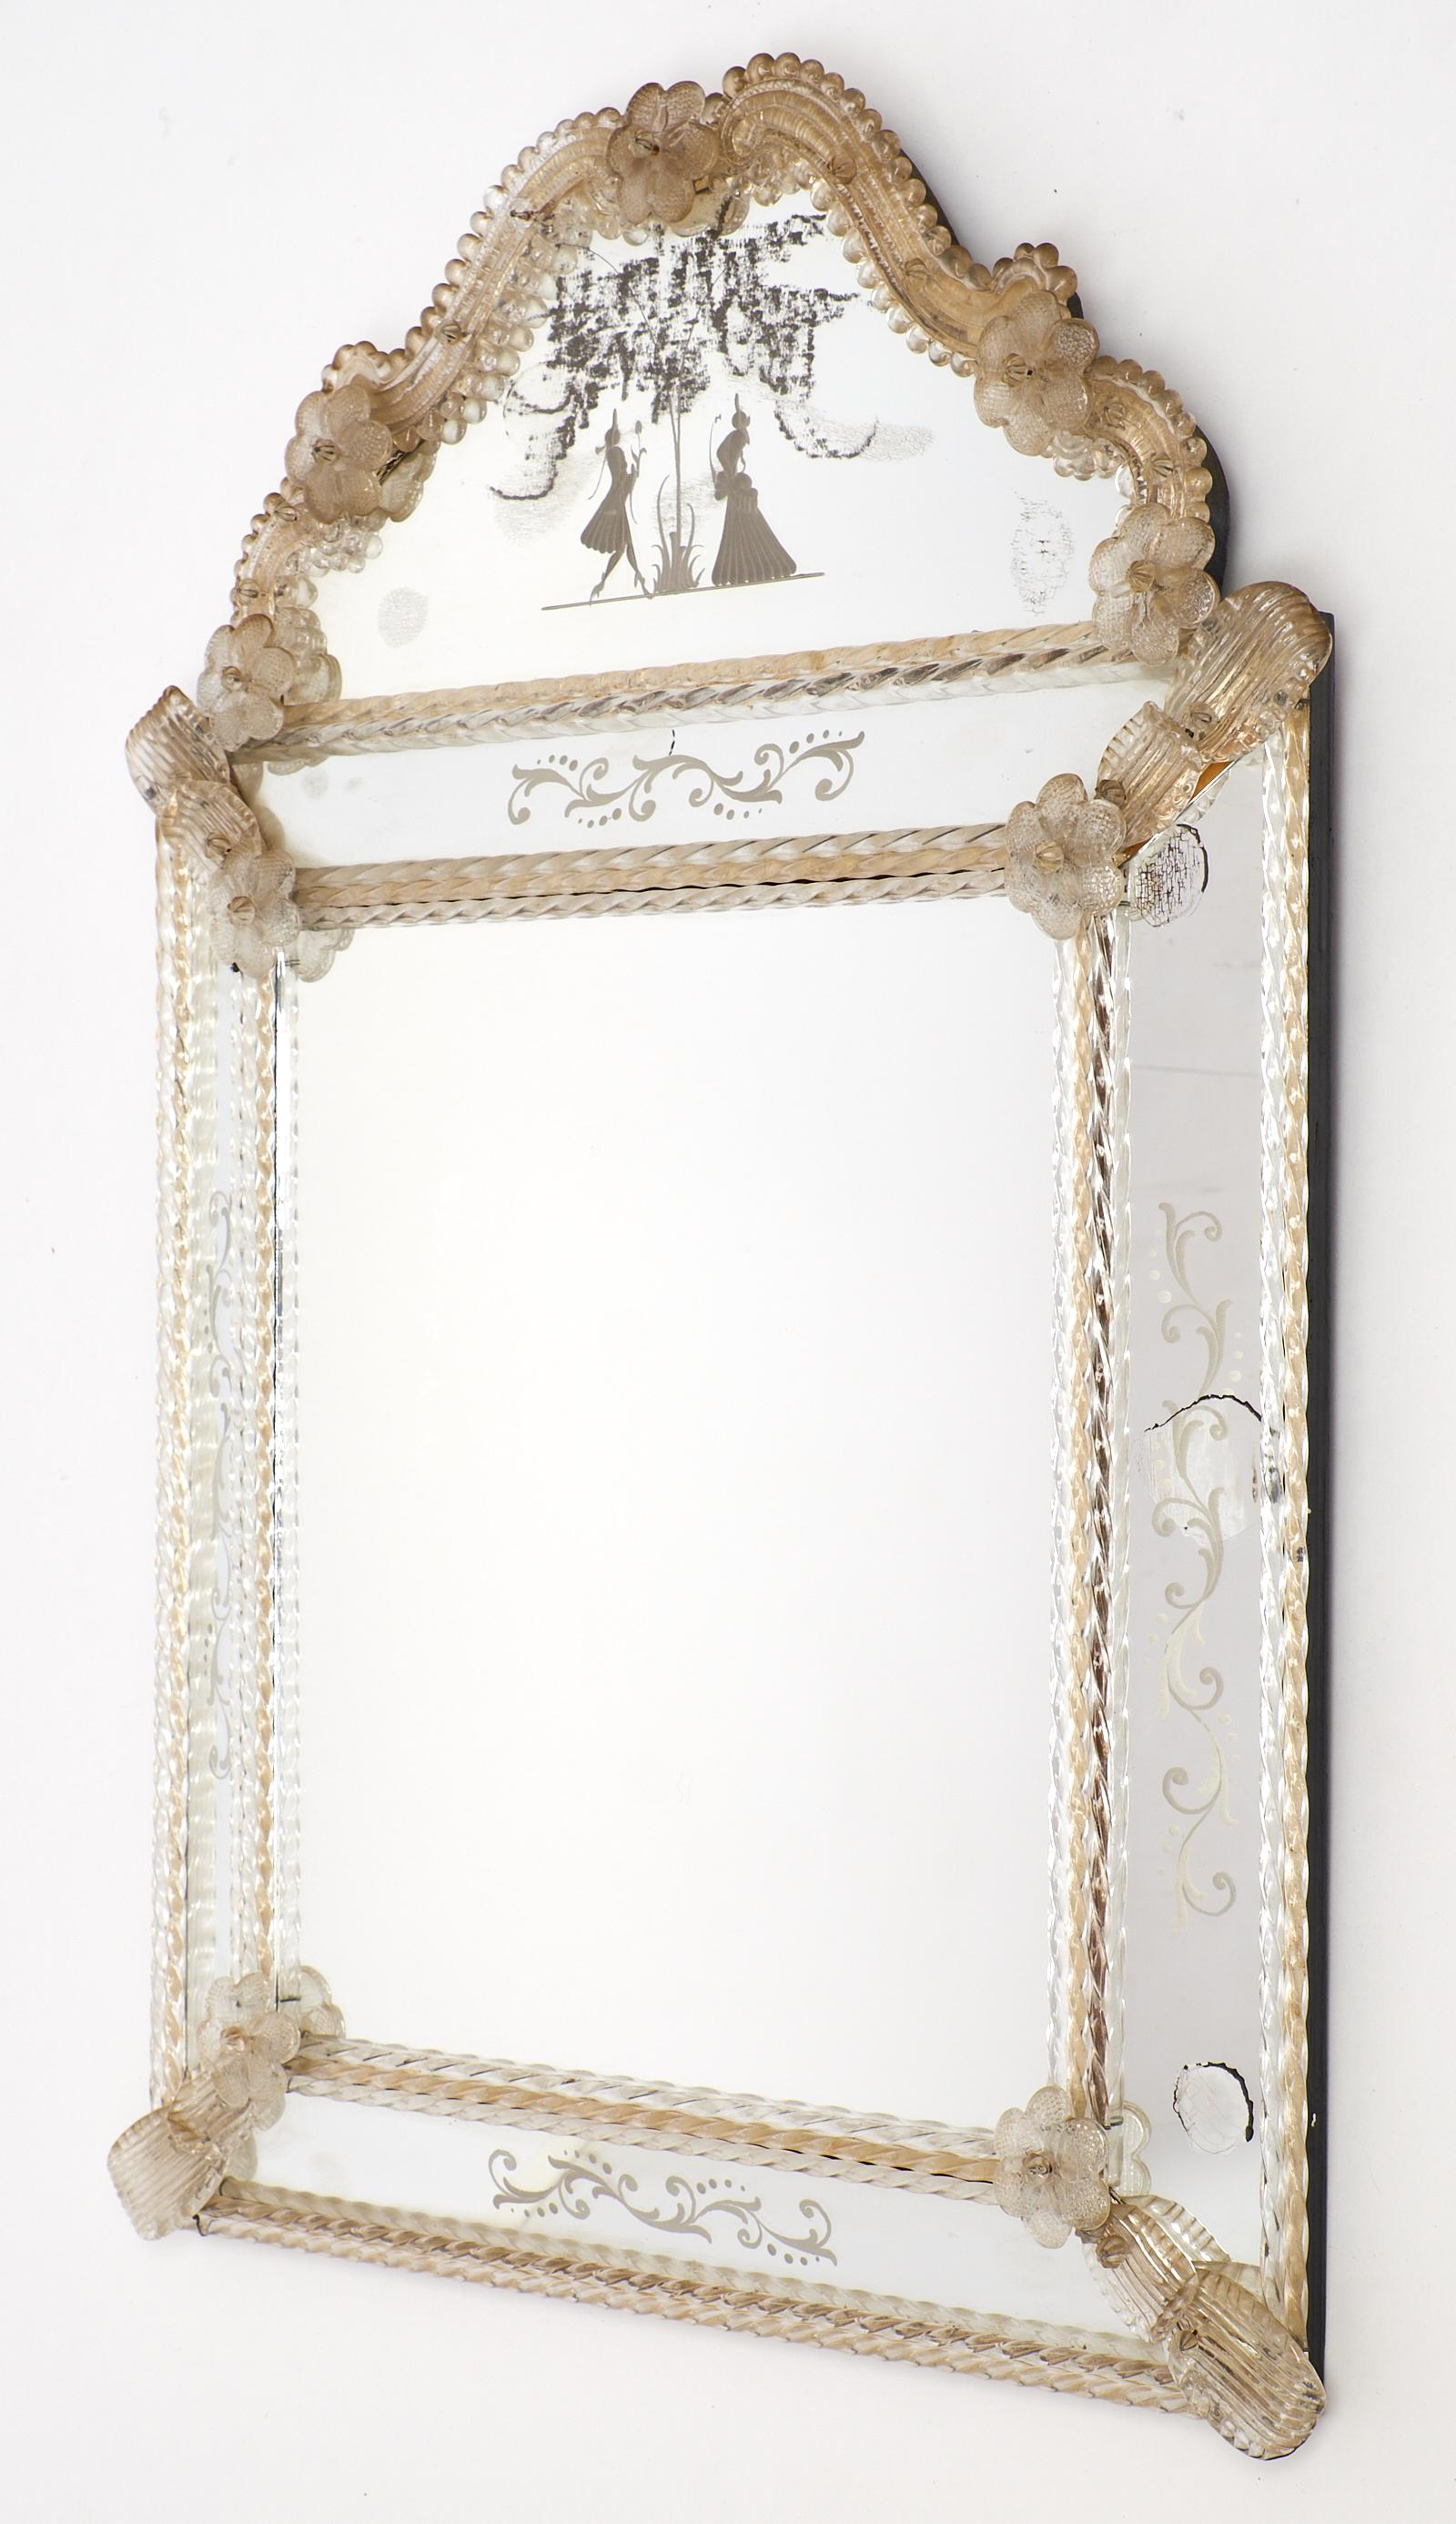 Venetian Mirrors For Sale Nz | Vanity And Nightstand Decoration Inside Venetian Mirrors For Sale (Photo 6 of 20)